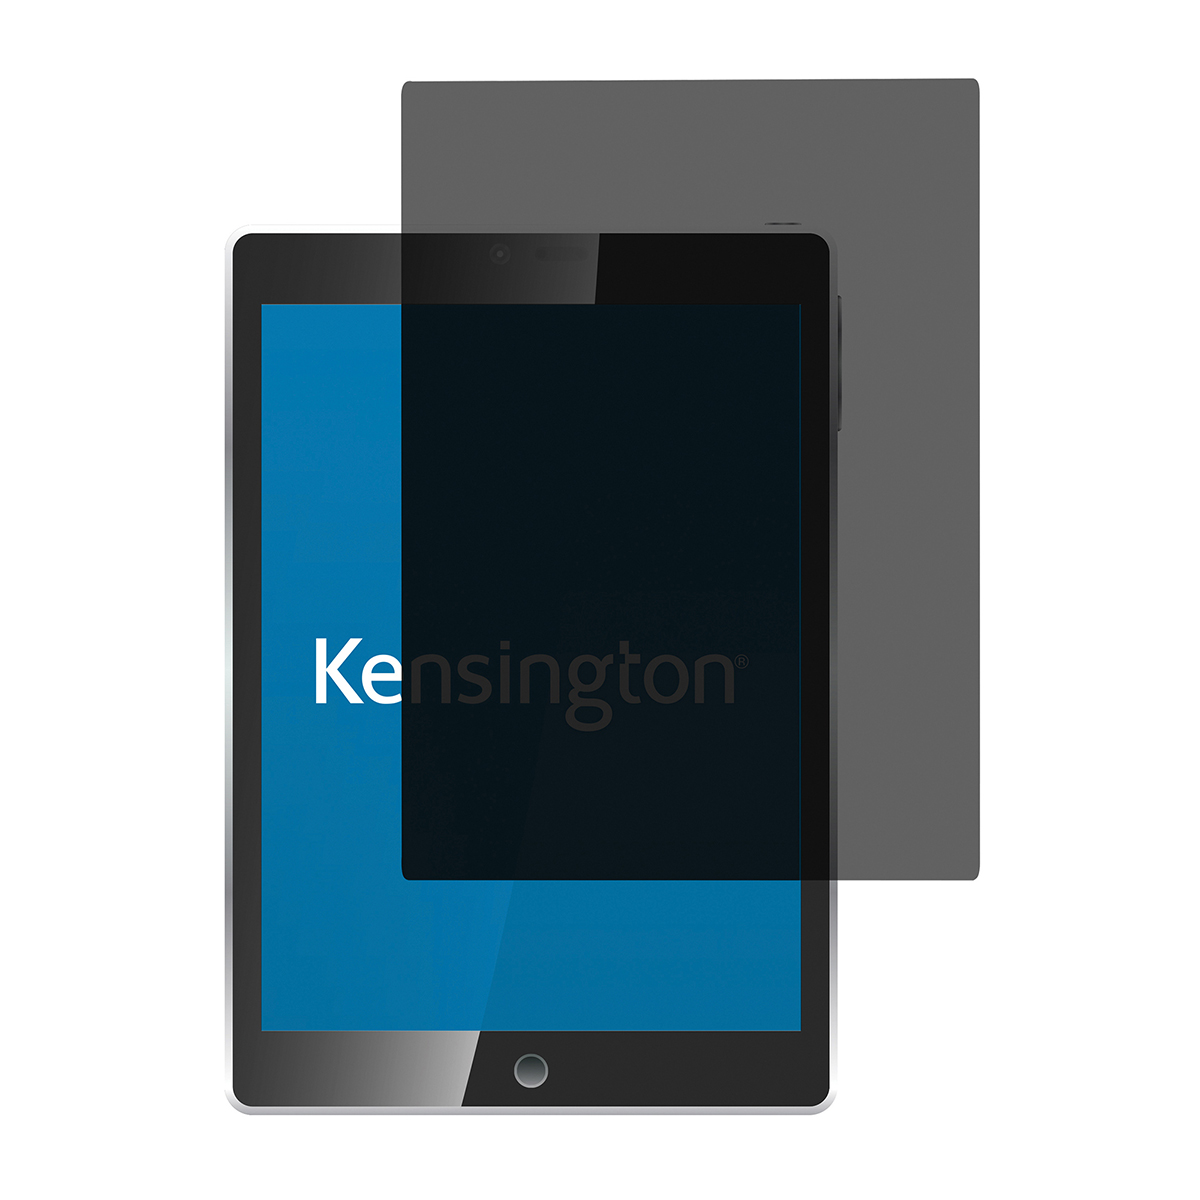 Kensington 626393 Privacy Filter 2 Way Removable for iPad Air - iPad Pro 9.7 Inch - iPad 2017